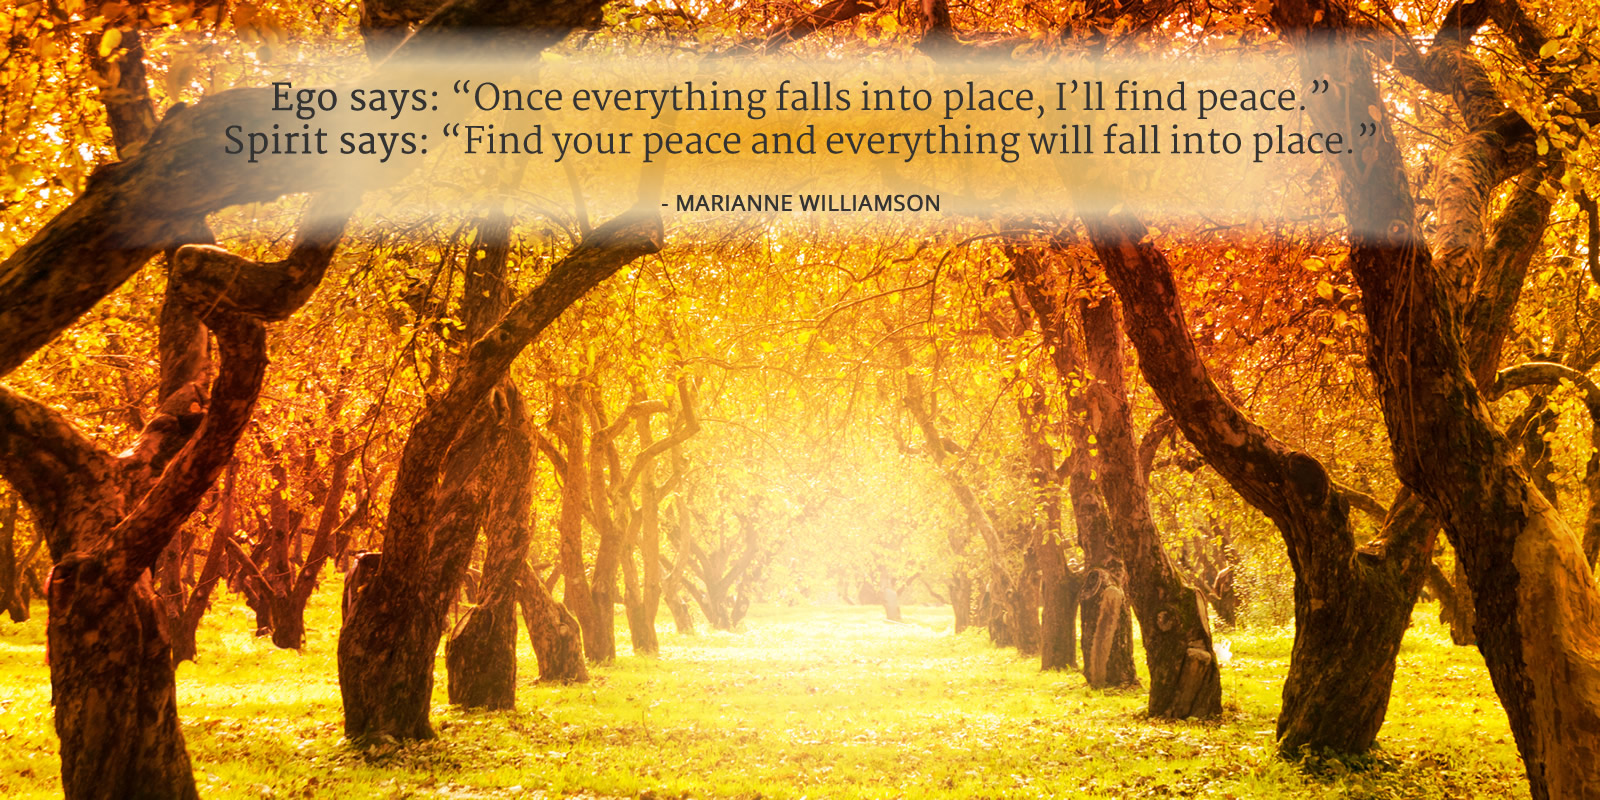 Ego says: Once everything falls into place, I'll find peace. Spirit says: Find your peace and everything will fall into place. - Marianne Williamson